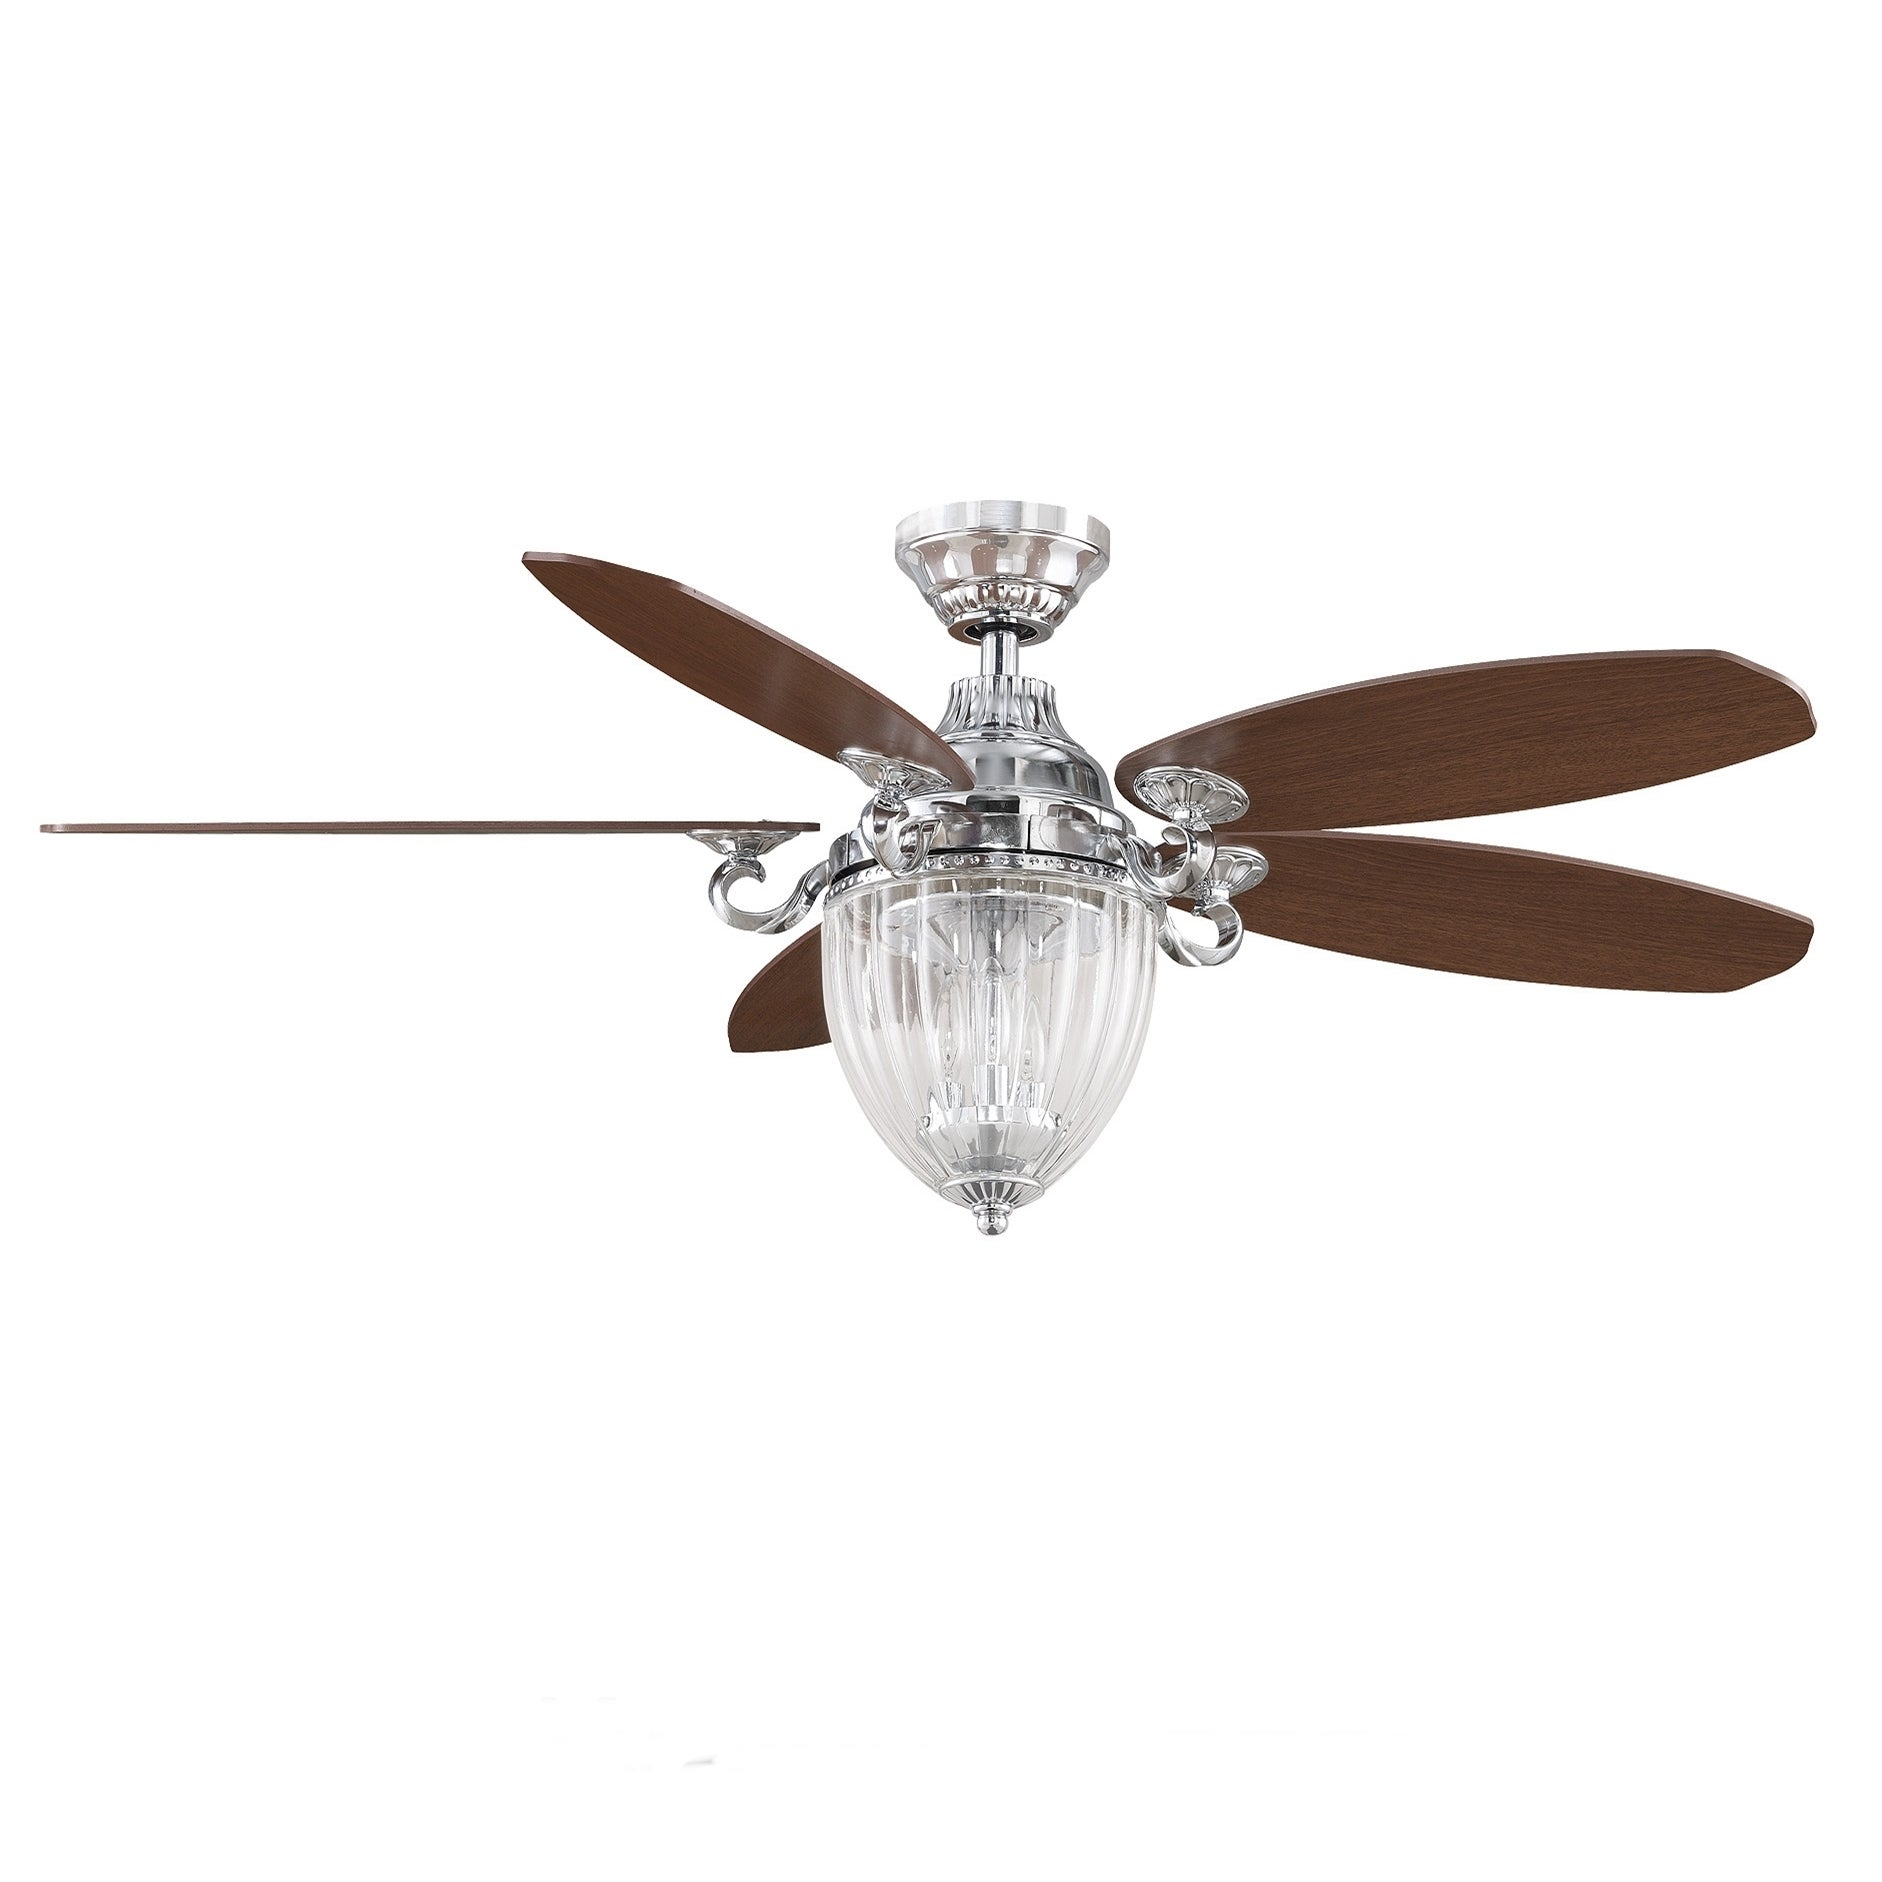 Fanimation Stonehill 52-Inch Chrome 3-light Ceiling Fan at Sears.com